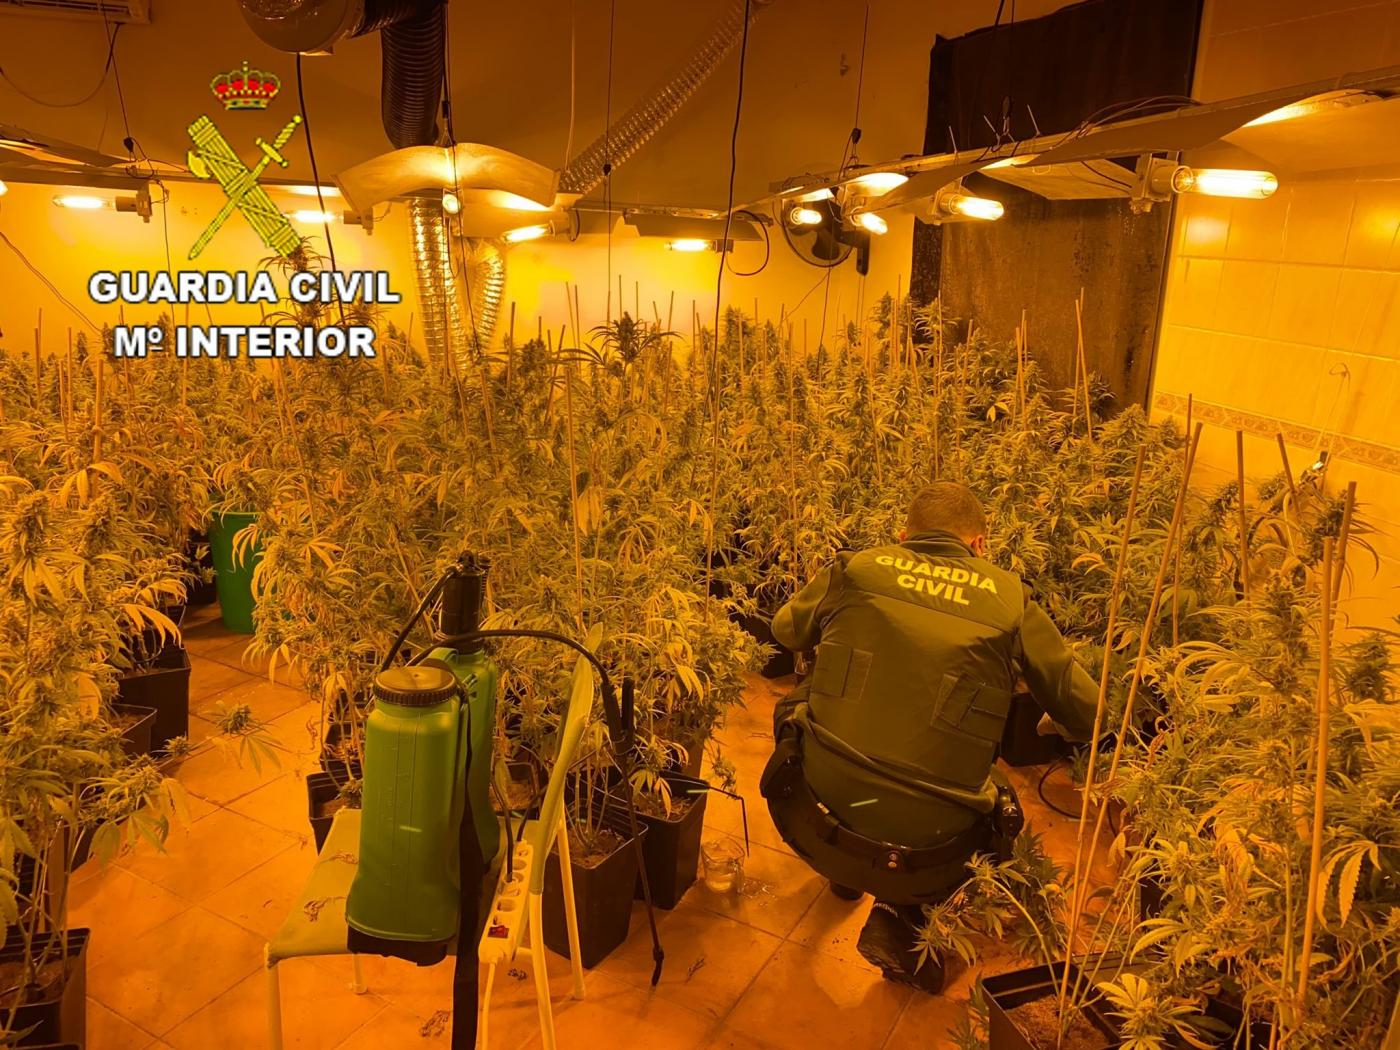 Plantación de marihuana encontrada por la Guardia Civil en Talavera. Europa Press